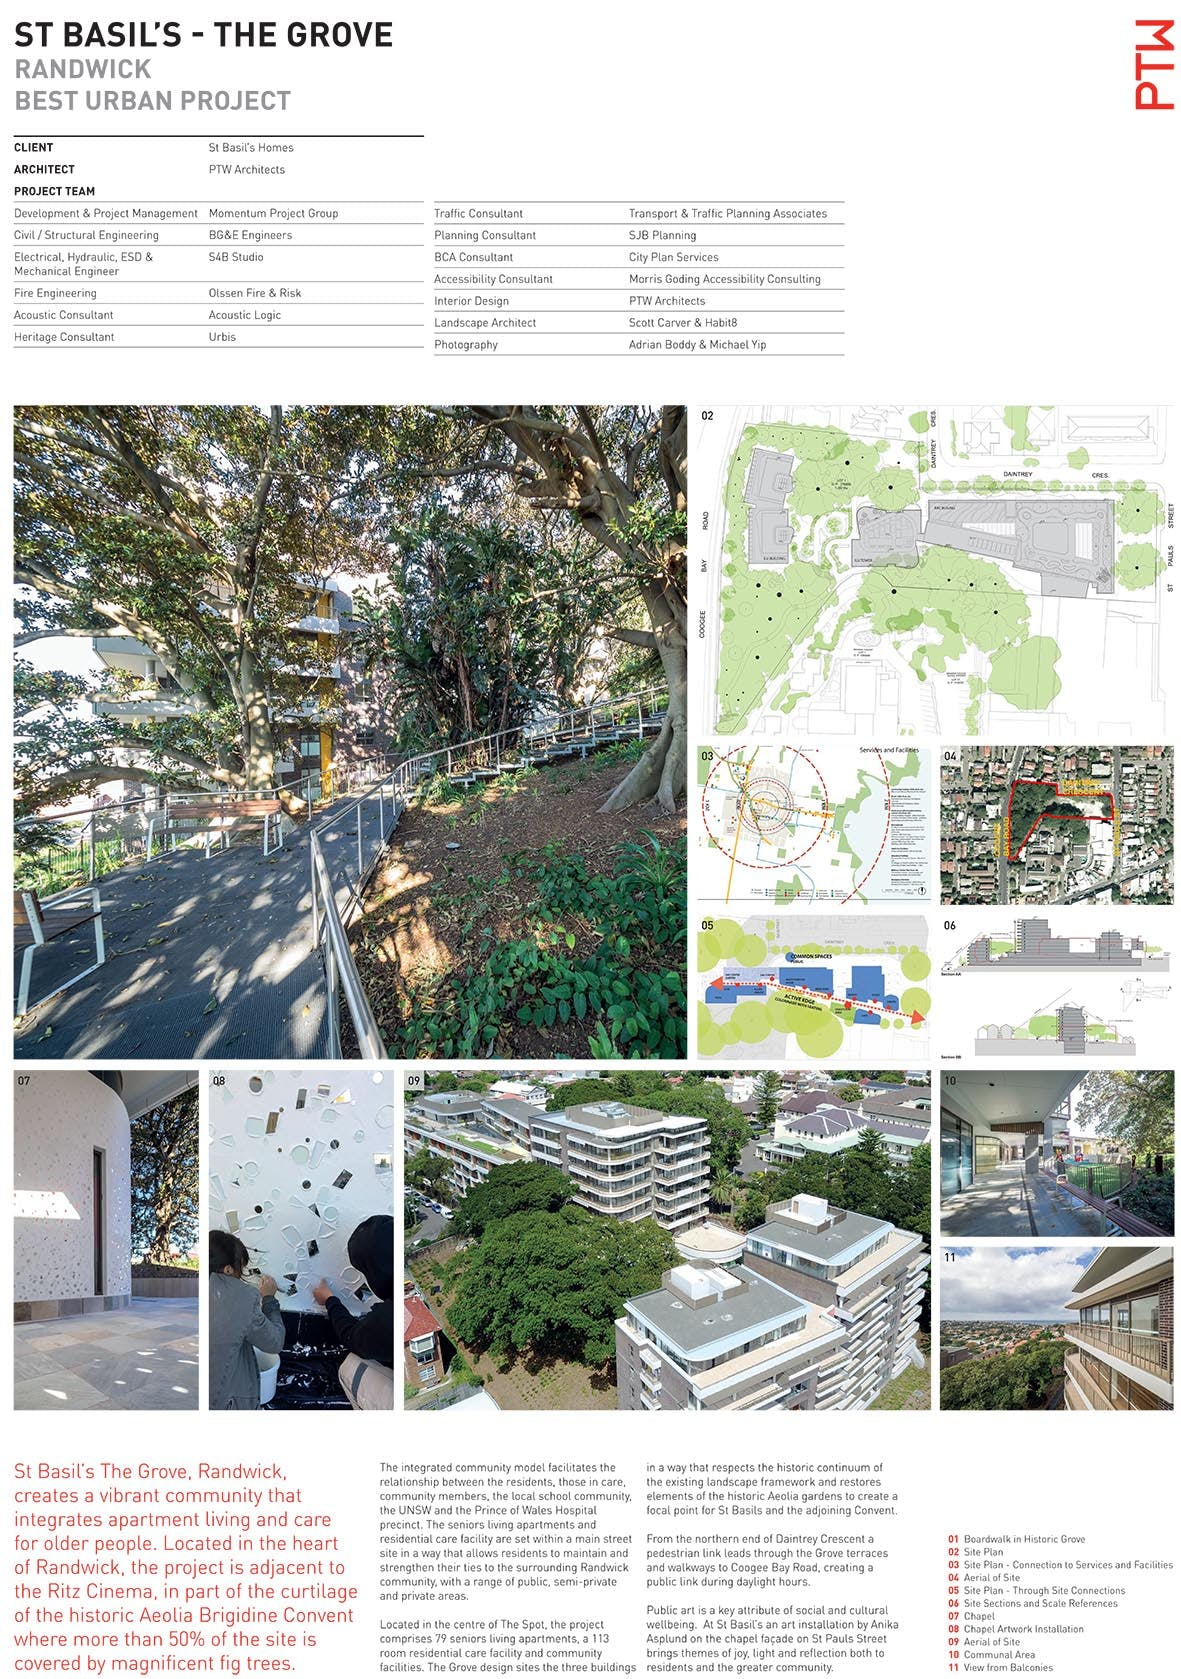 St Basils The Grove Best Urban Project